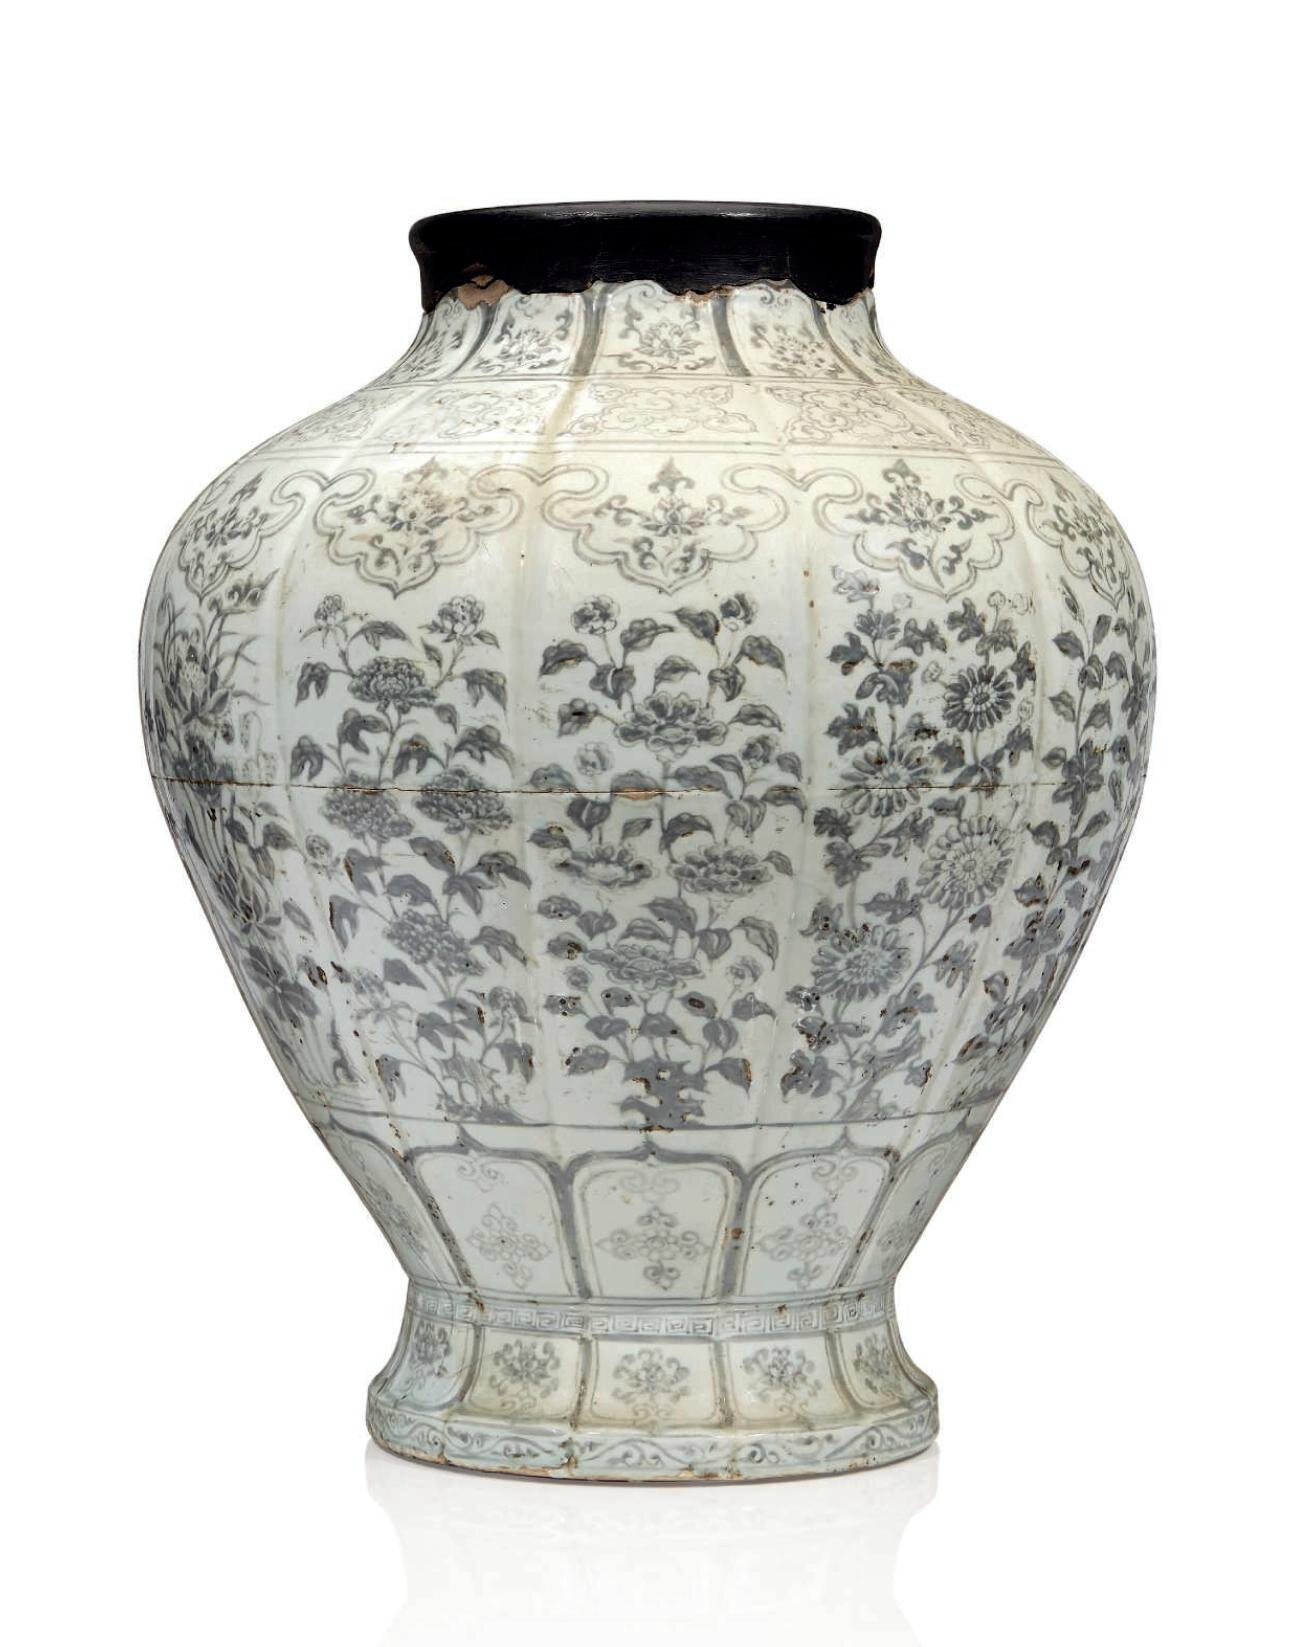 An important, very rare and large Early Ming copper-red-decorated jar, guan, Hongwu period (1368-1398)